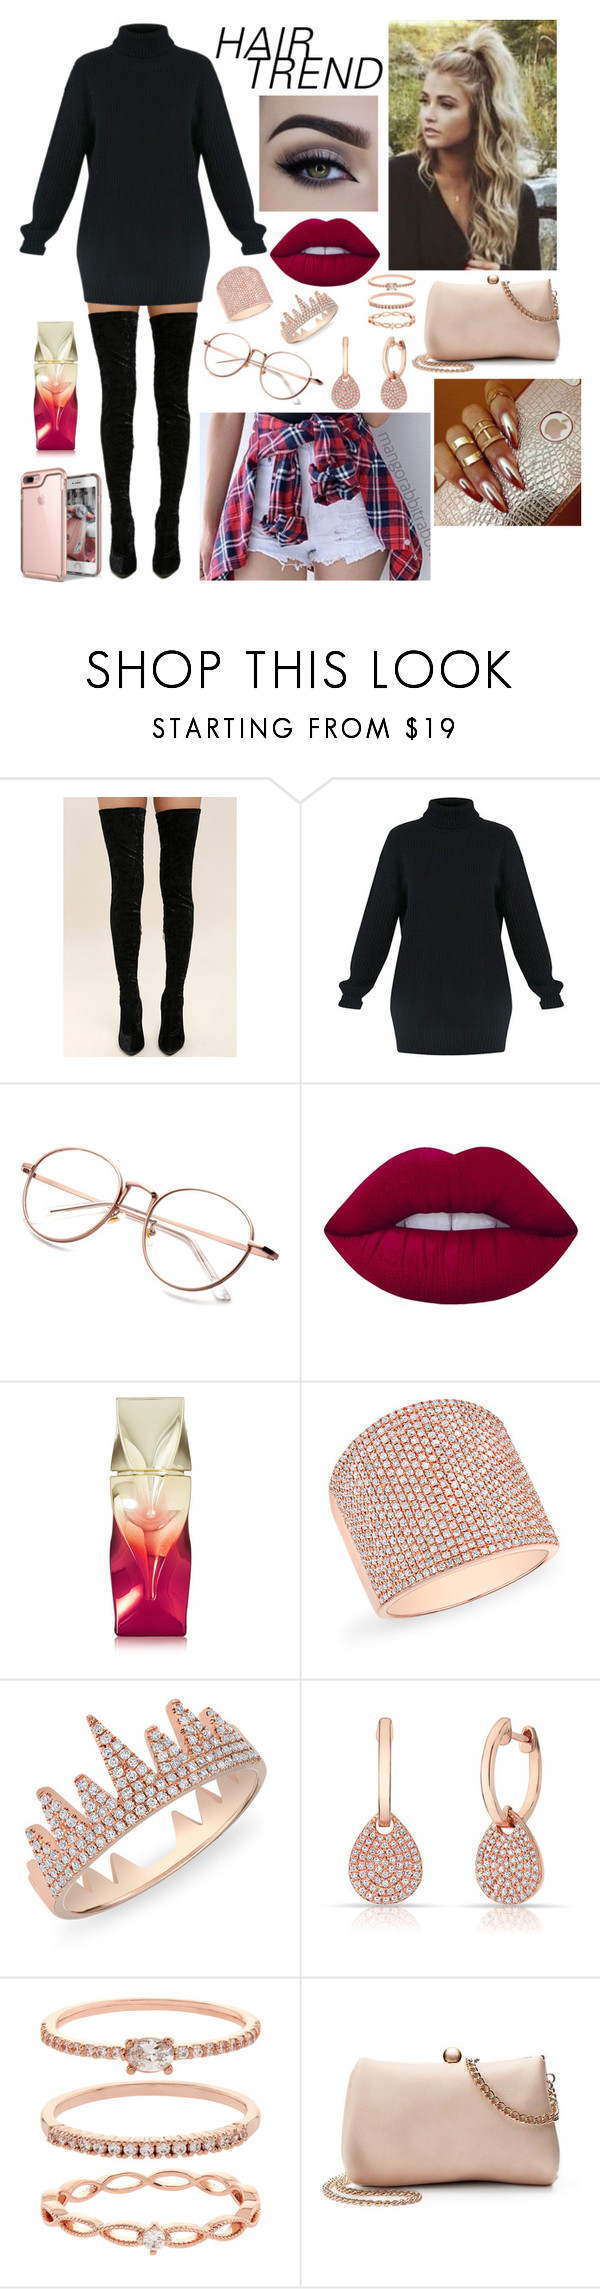 """""""Beauty"""" by duygumalik ❤ liked on Polyvore featuring beauty, Cape Robbin, Lime Crime, Christian Louboutin, Anne Sisteron, Accessorize, LC Lauren Conrad, hairtrend and rainbowhair"""